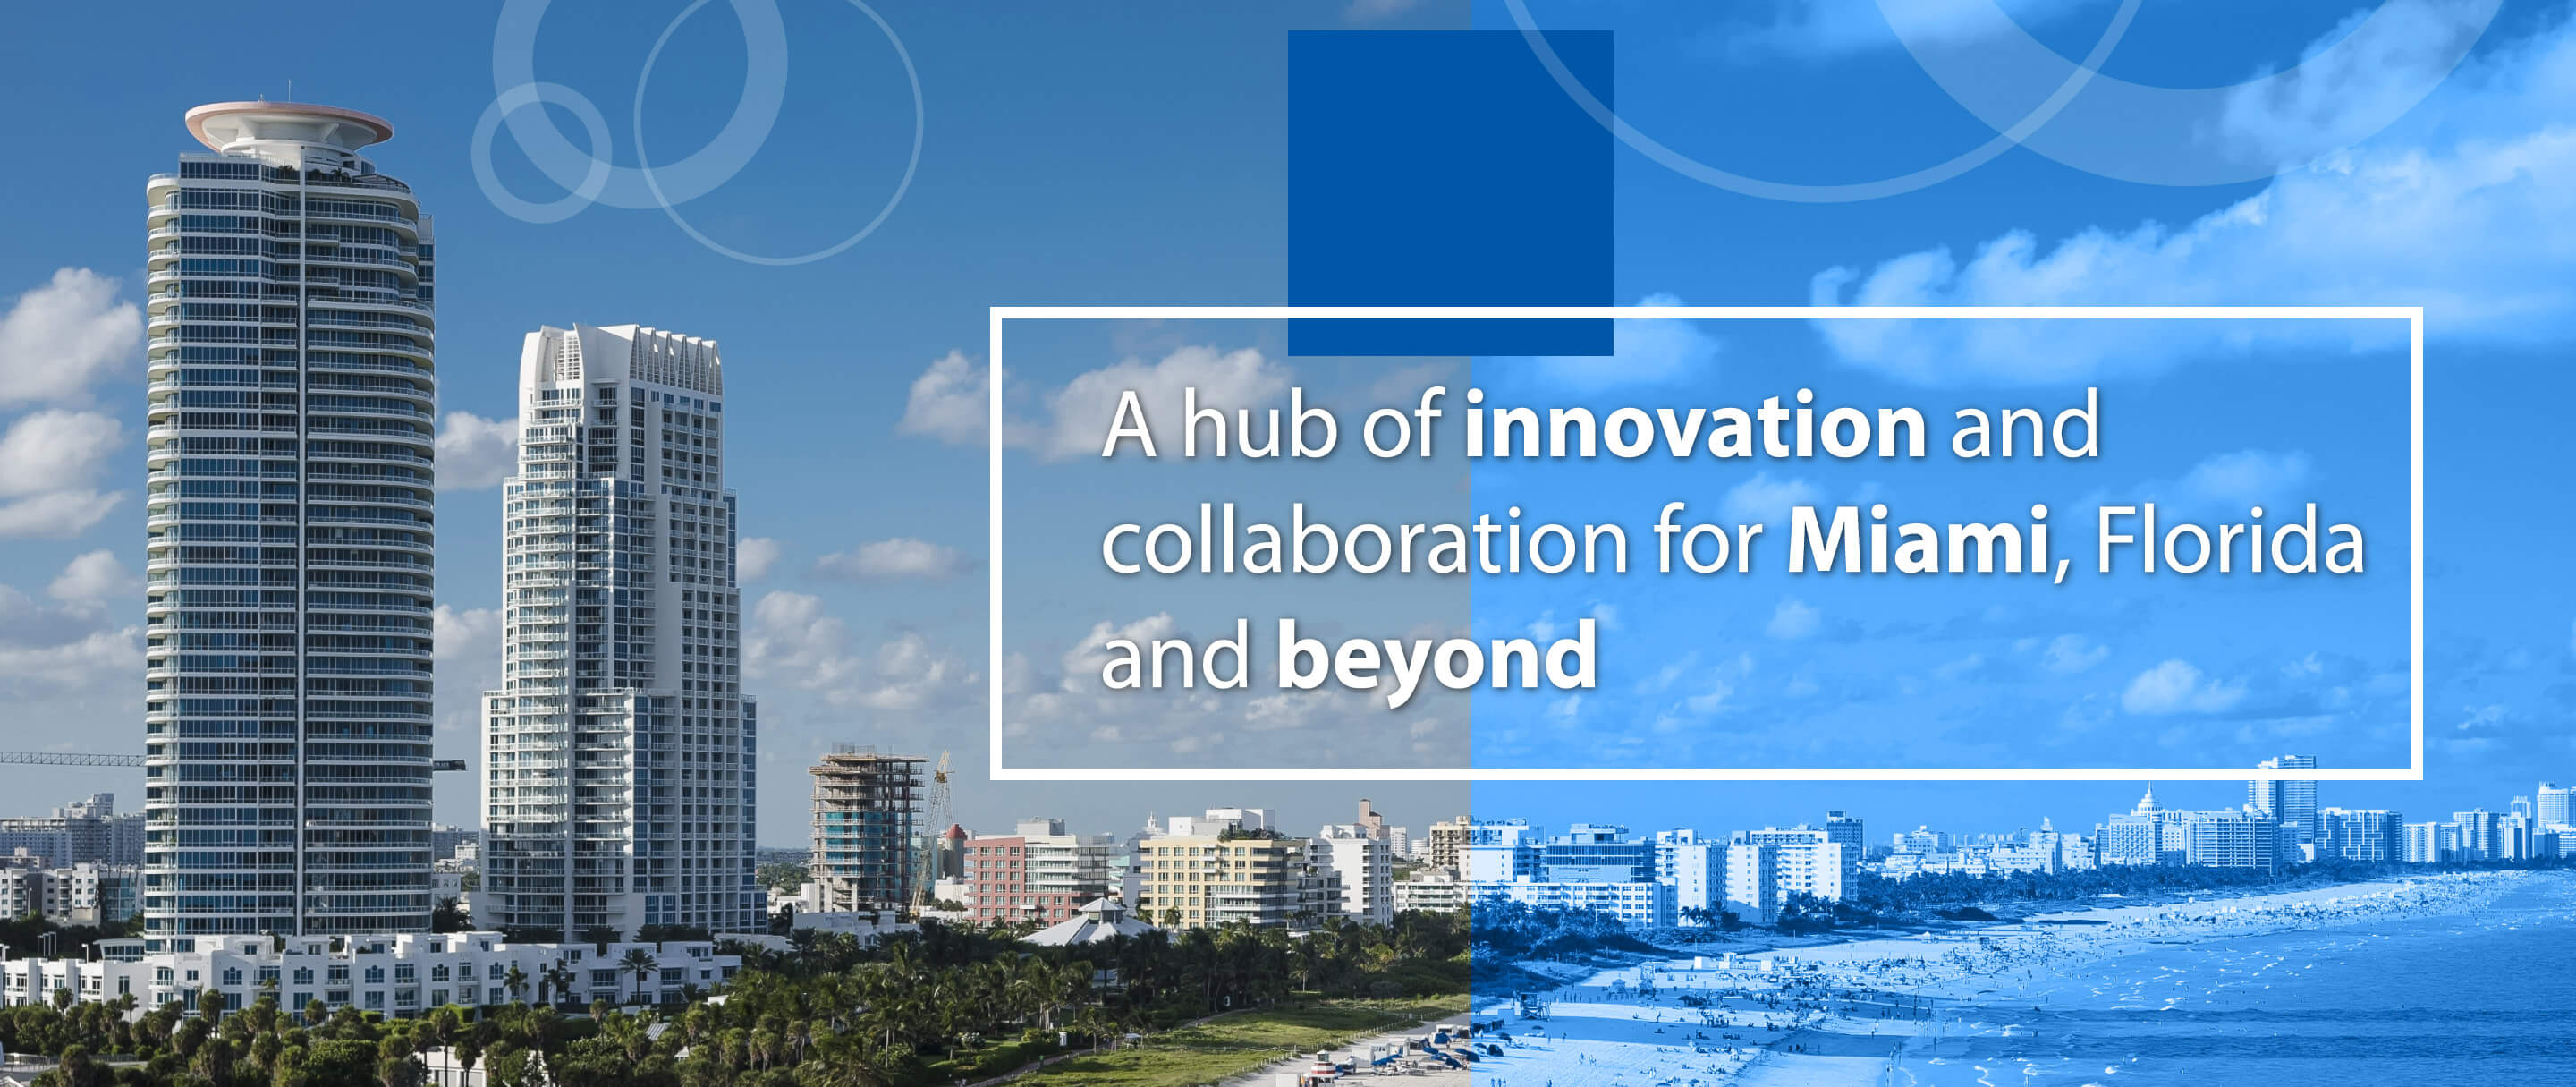 A hub of innovation and collaboration for Miami, Florida and beyond